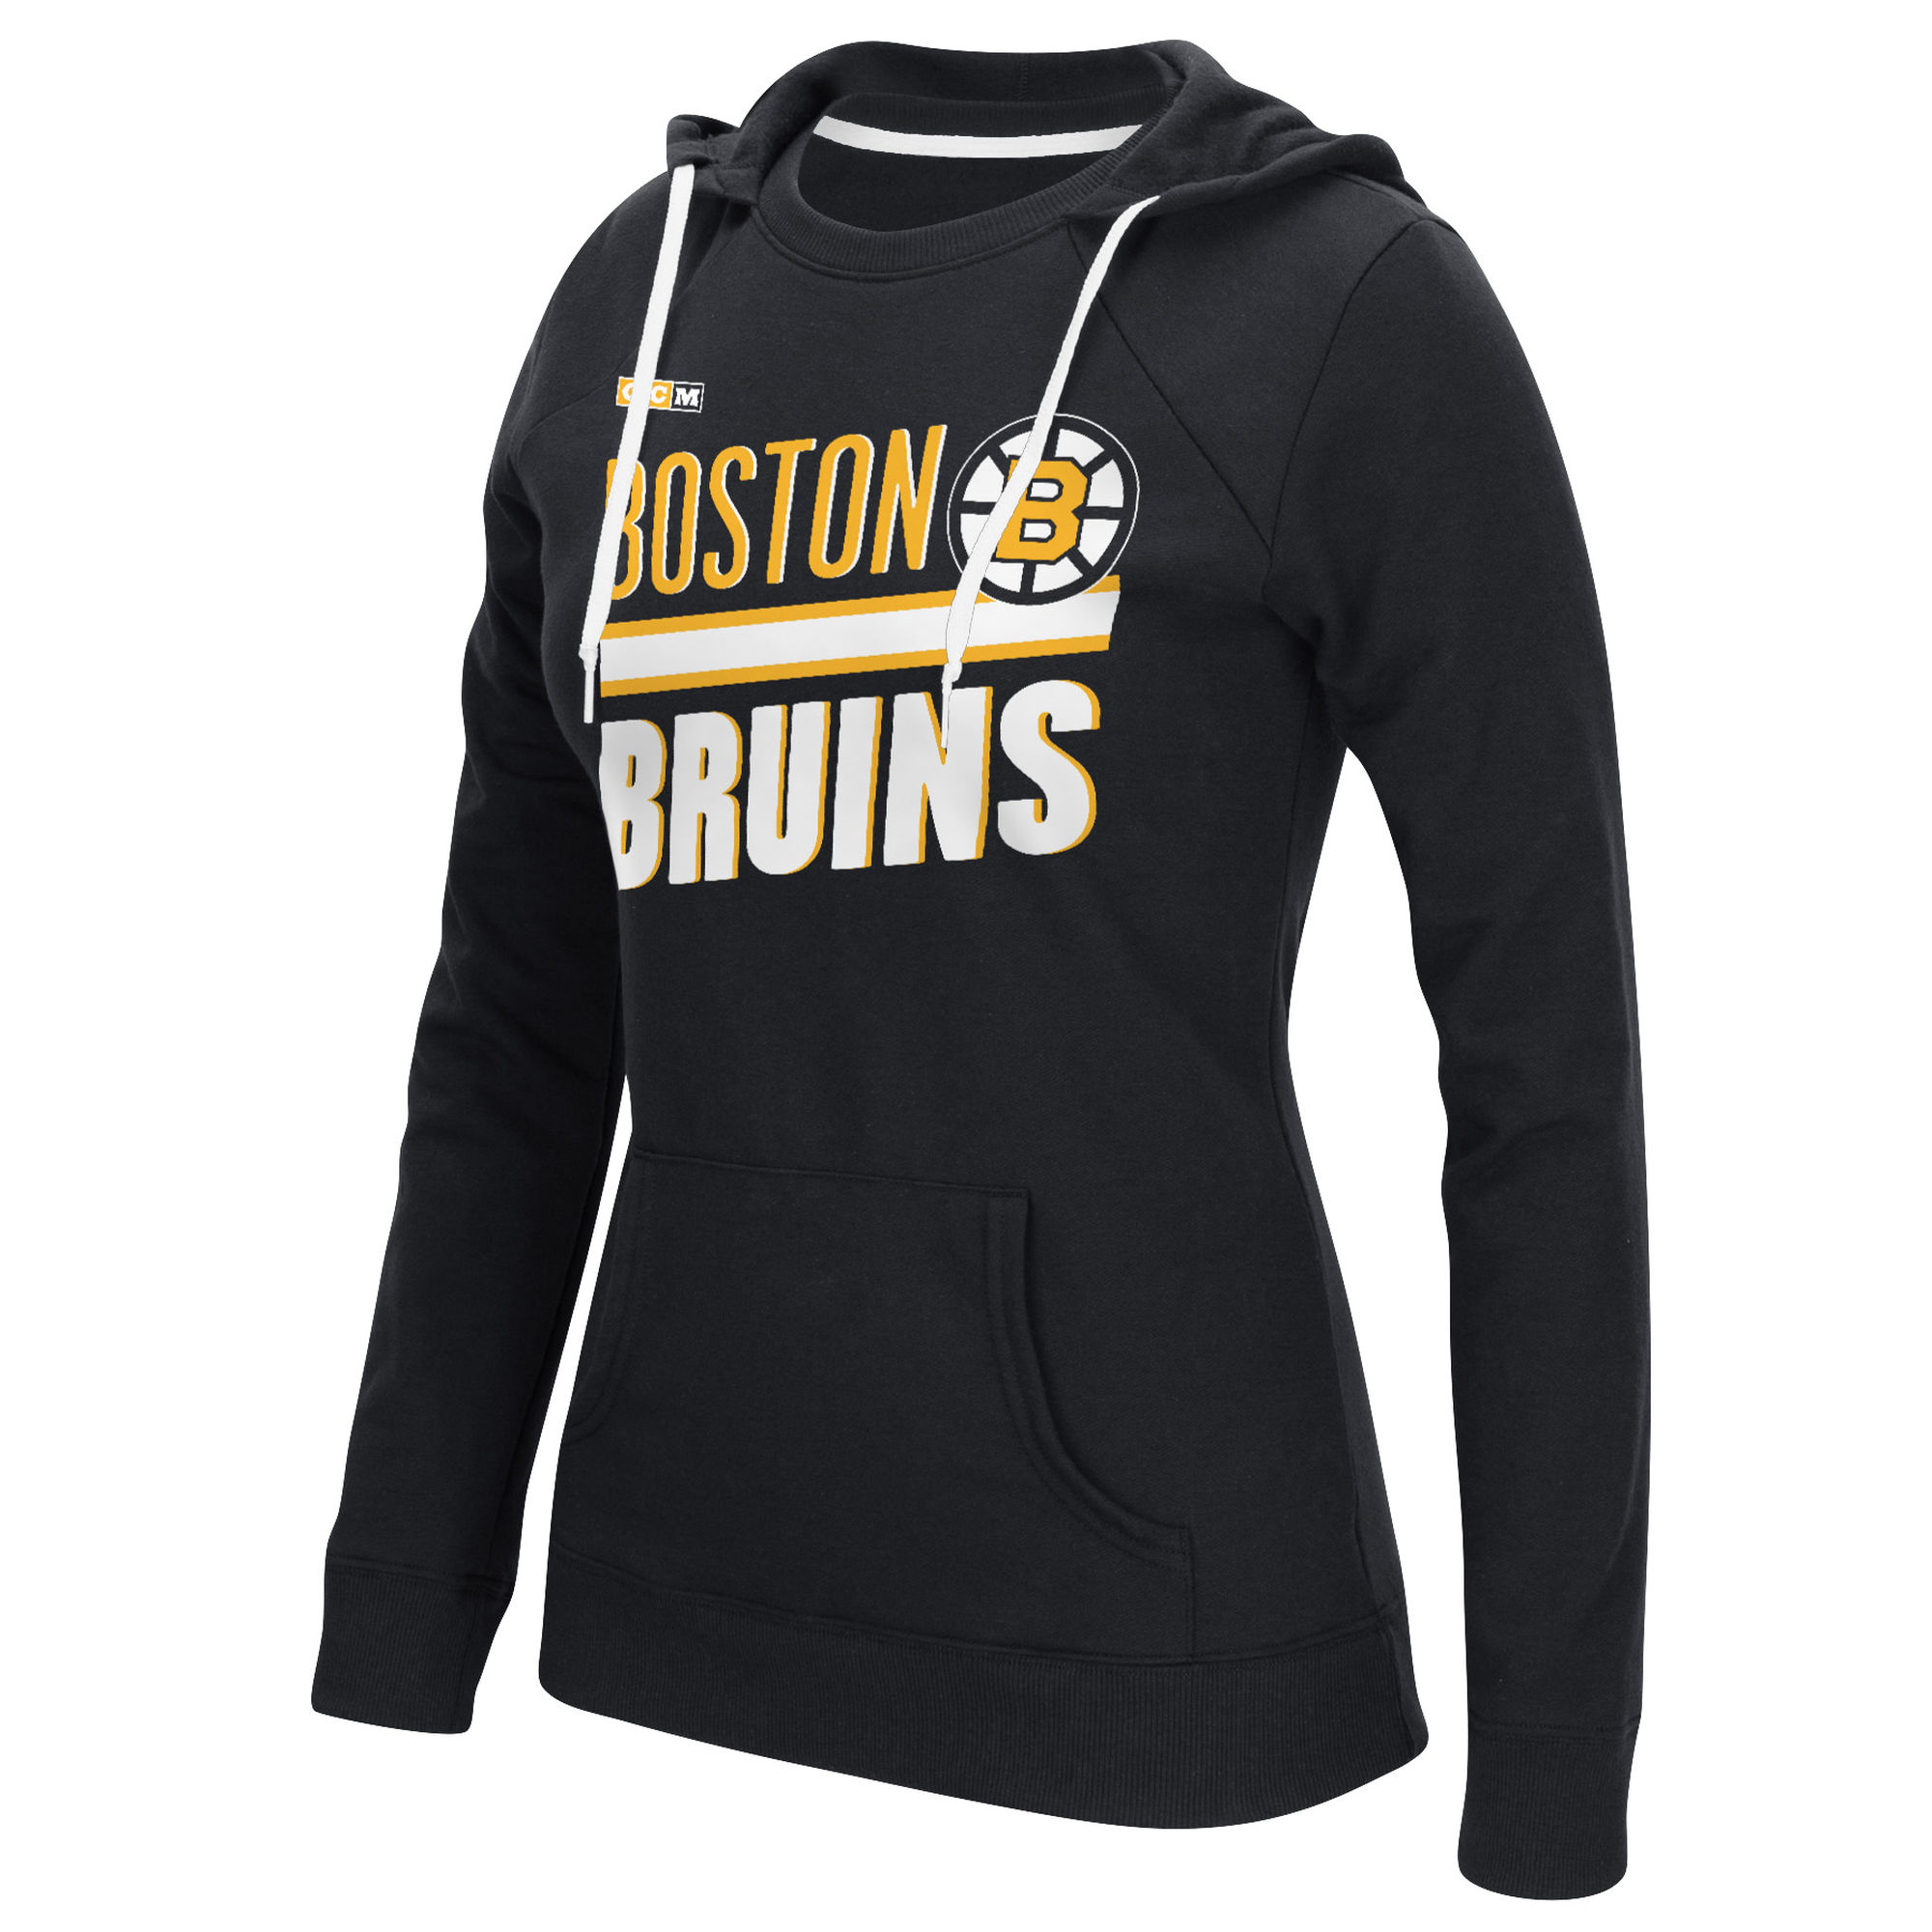 Bruins Black CCM Women's Customized All Stitched Hooded Sweatshirt